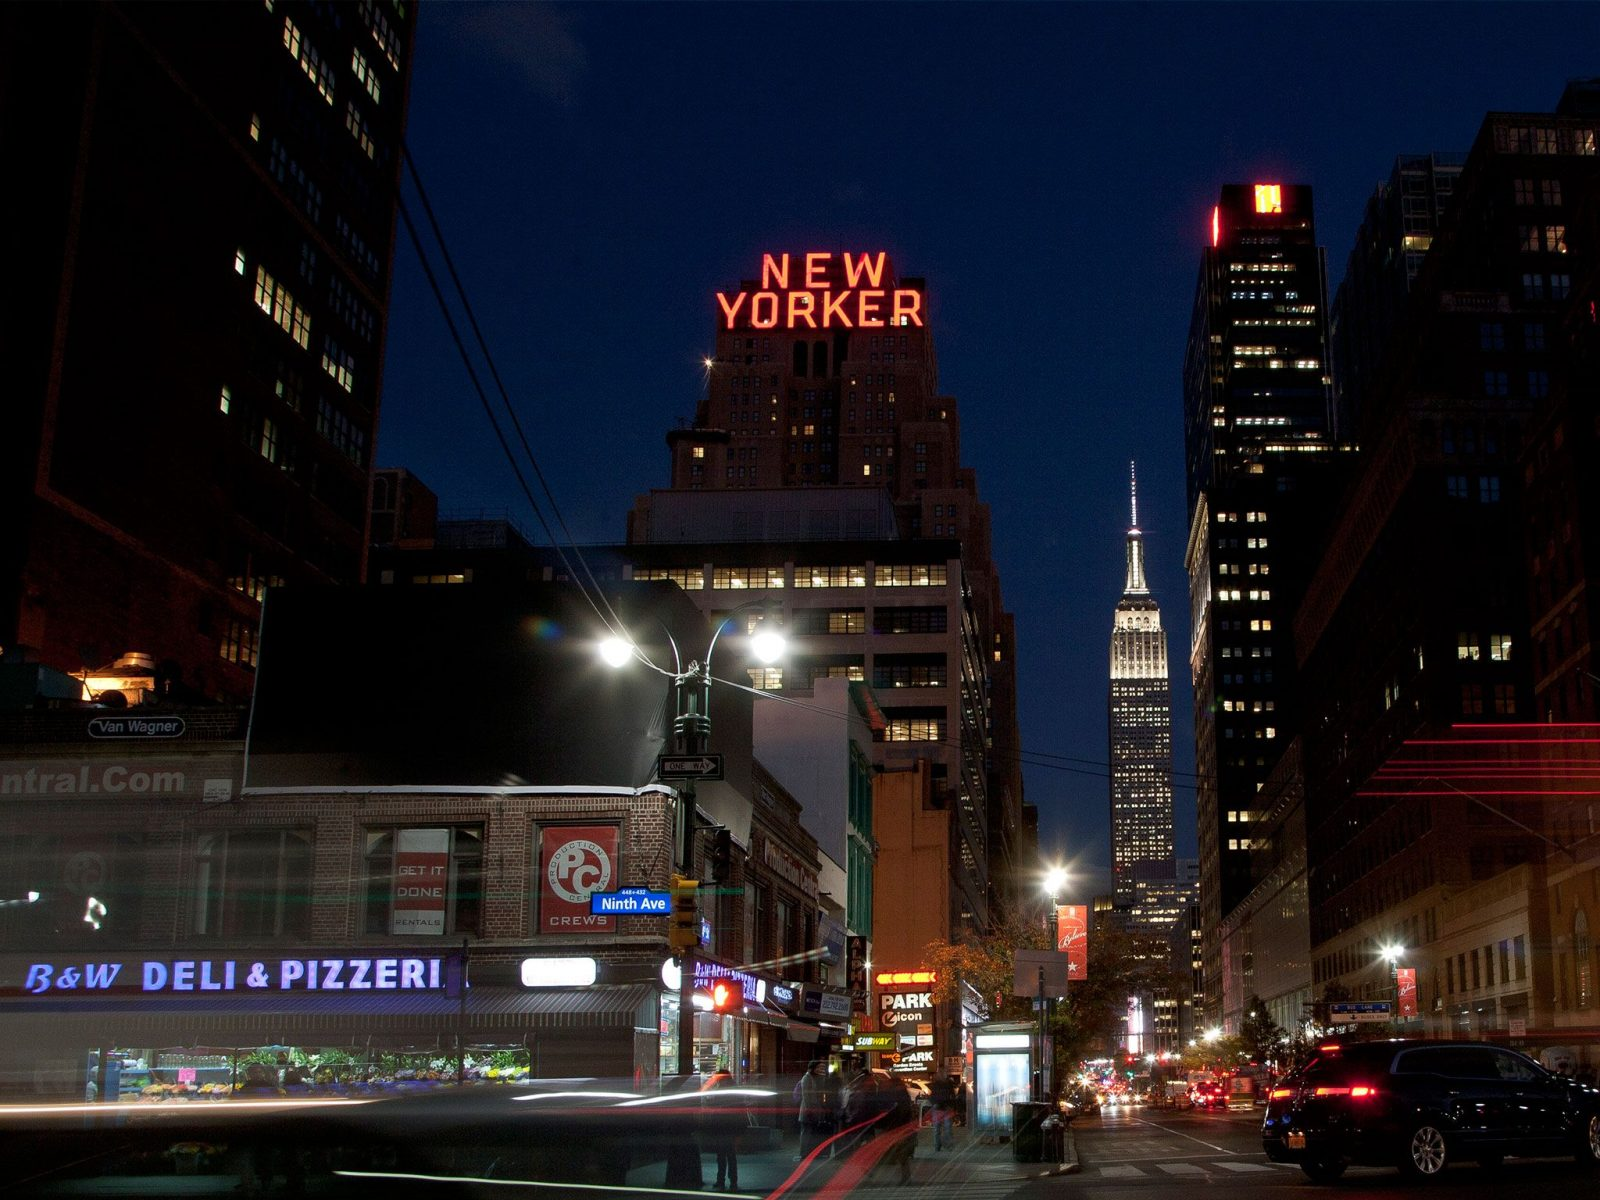 The New Yorker Hotel is an Icon of Manhattan. You Can Stay Here for Free Using Wyndham Points.